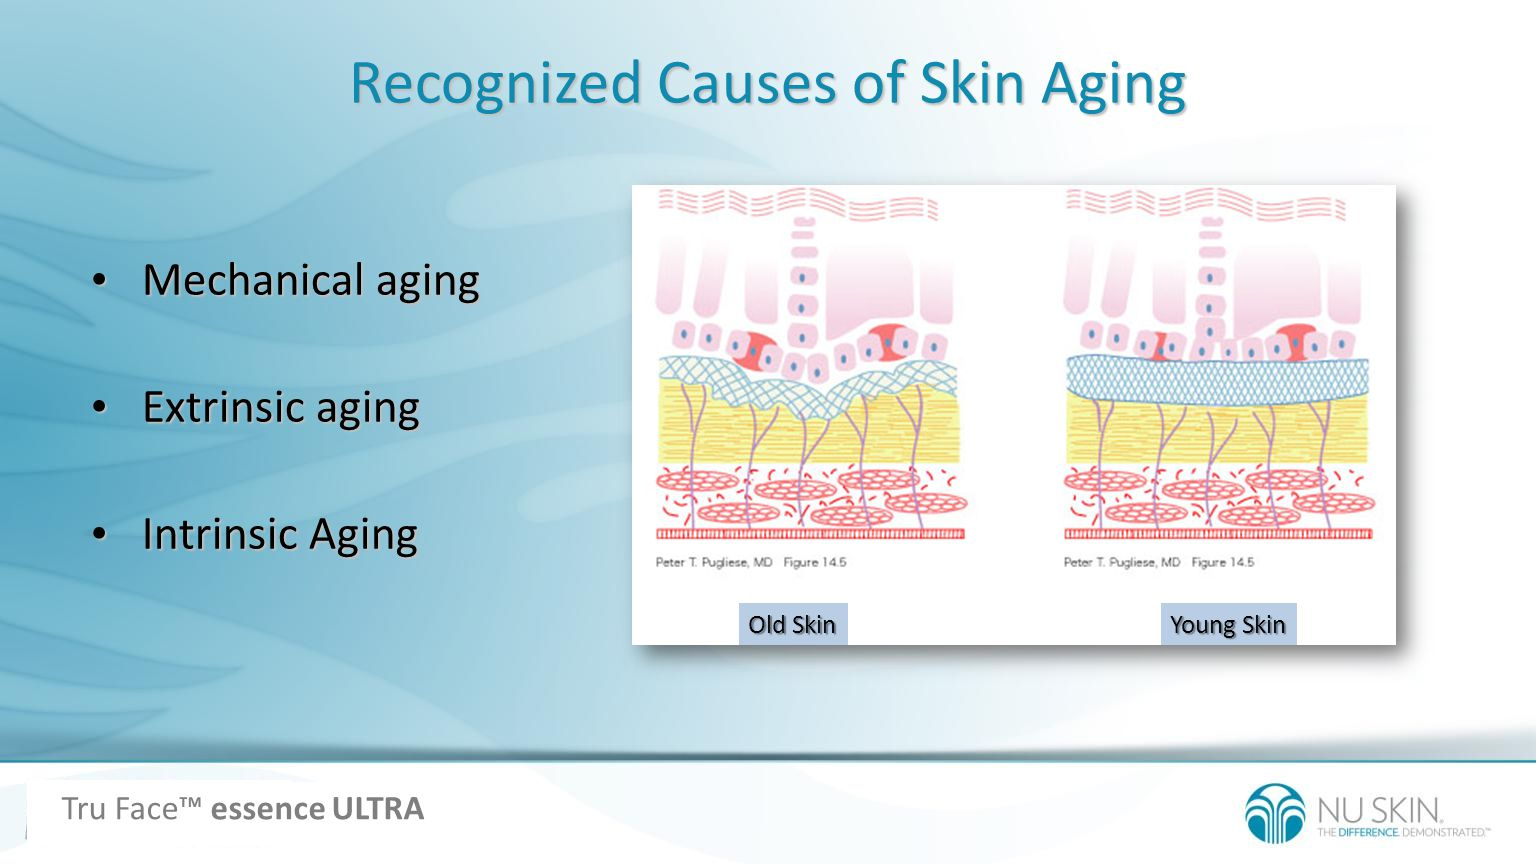 Recognized Causes of Skin Aging